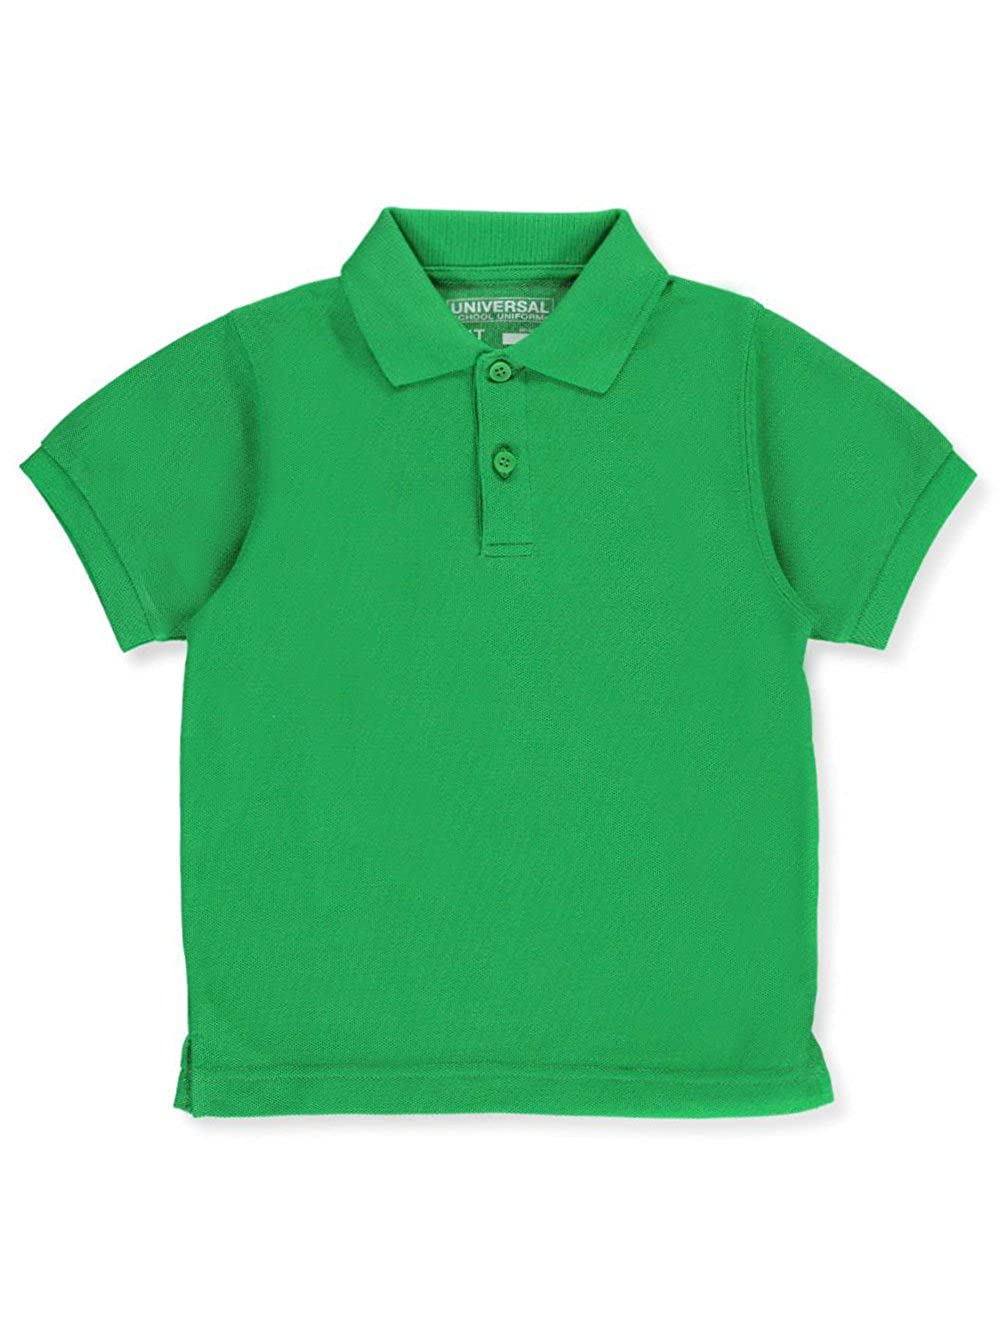 Universal School Uniform Baby Boys Short Sleeve Pique Polo Kelly Green Size 4T Staniu838aKGR4T